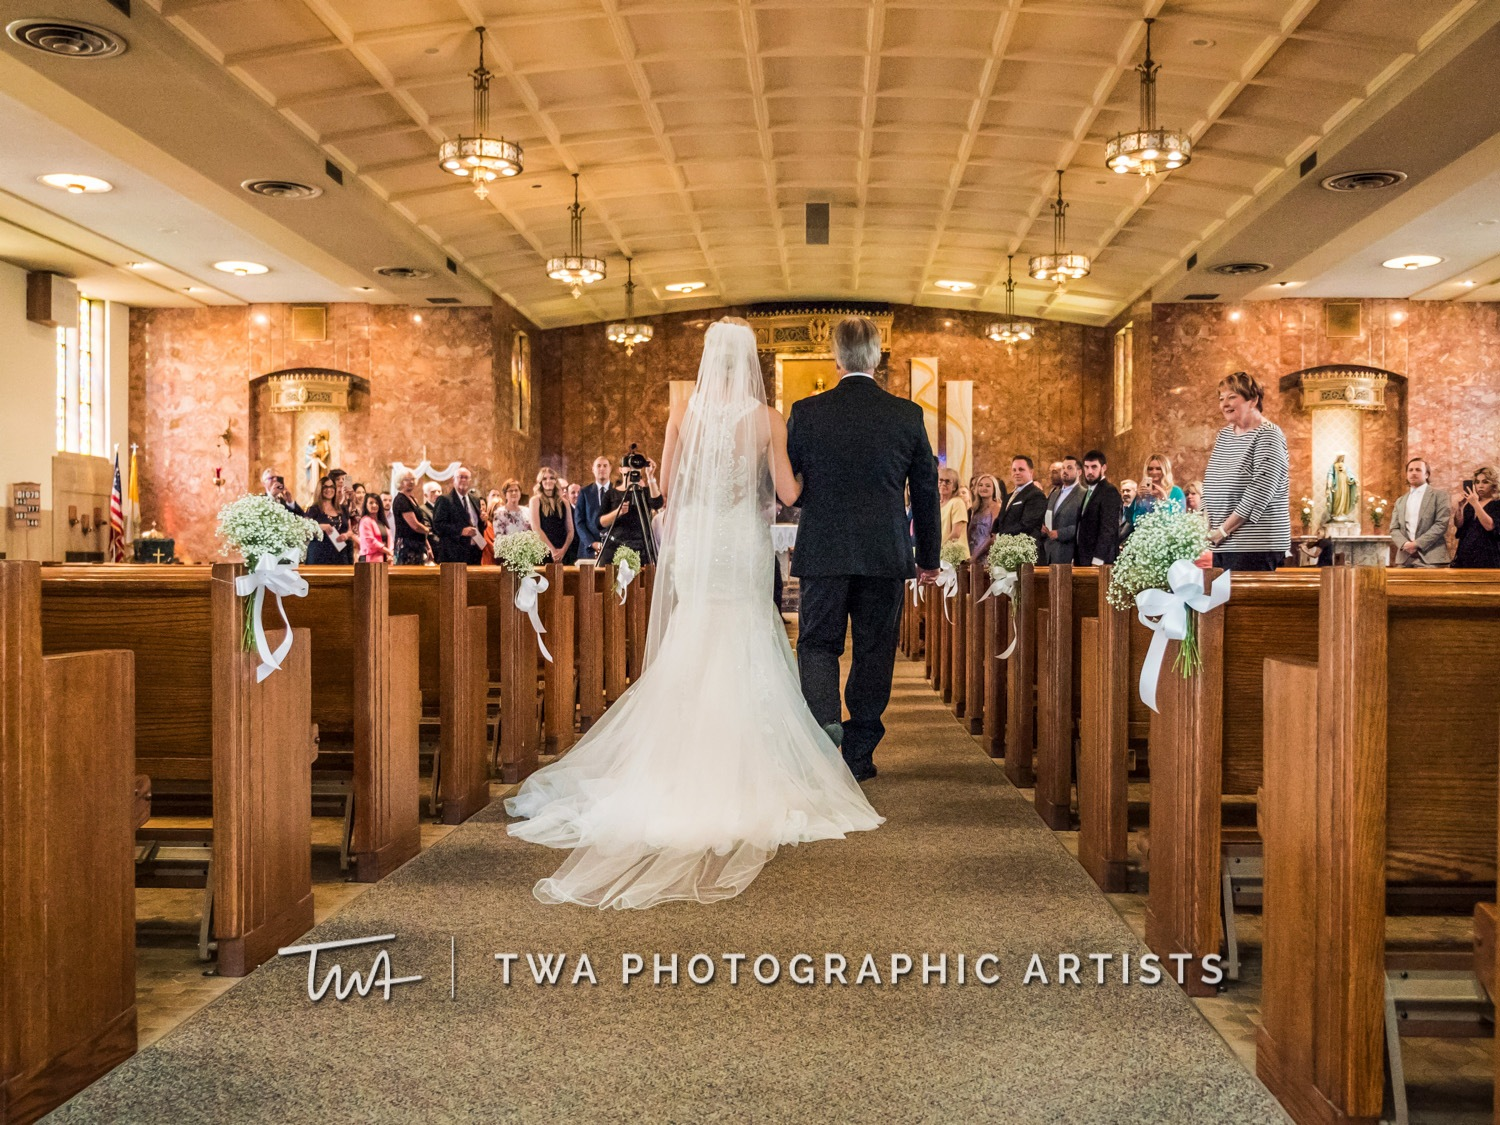 Chicago-Wedding-Photographer-TWA-Photographic-Artists-Ravisloe-CC_Steele_Zenere_JM_MP-0947